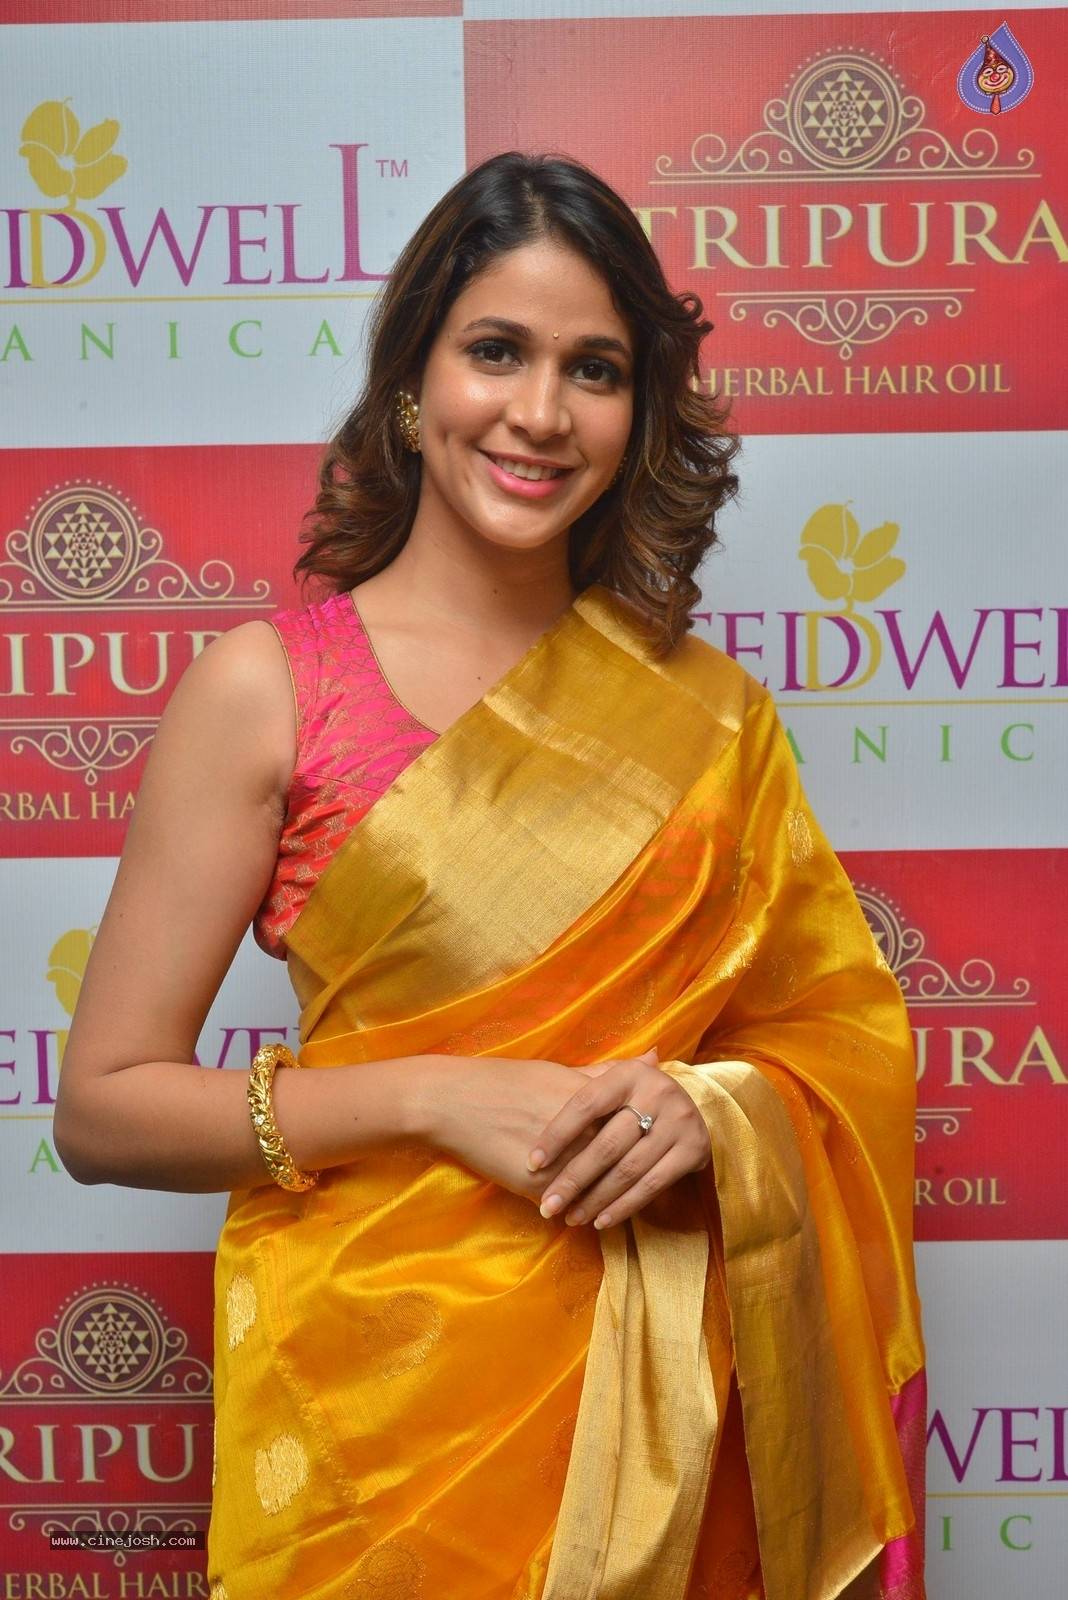 Lavanya Tripathi Photos - 8 / 21 photos